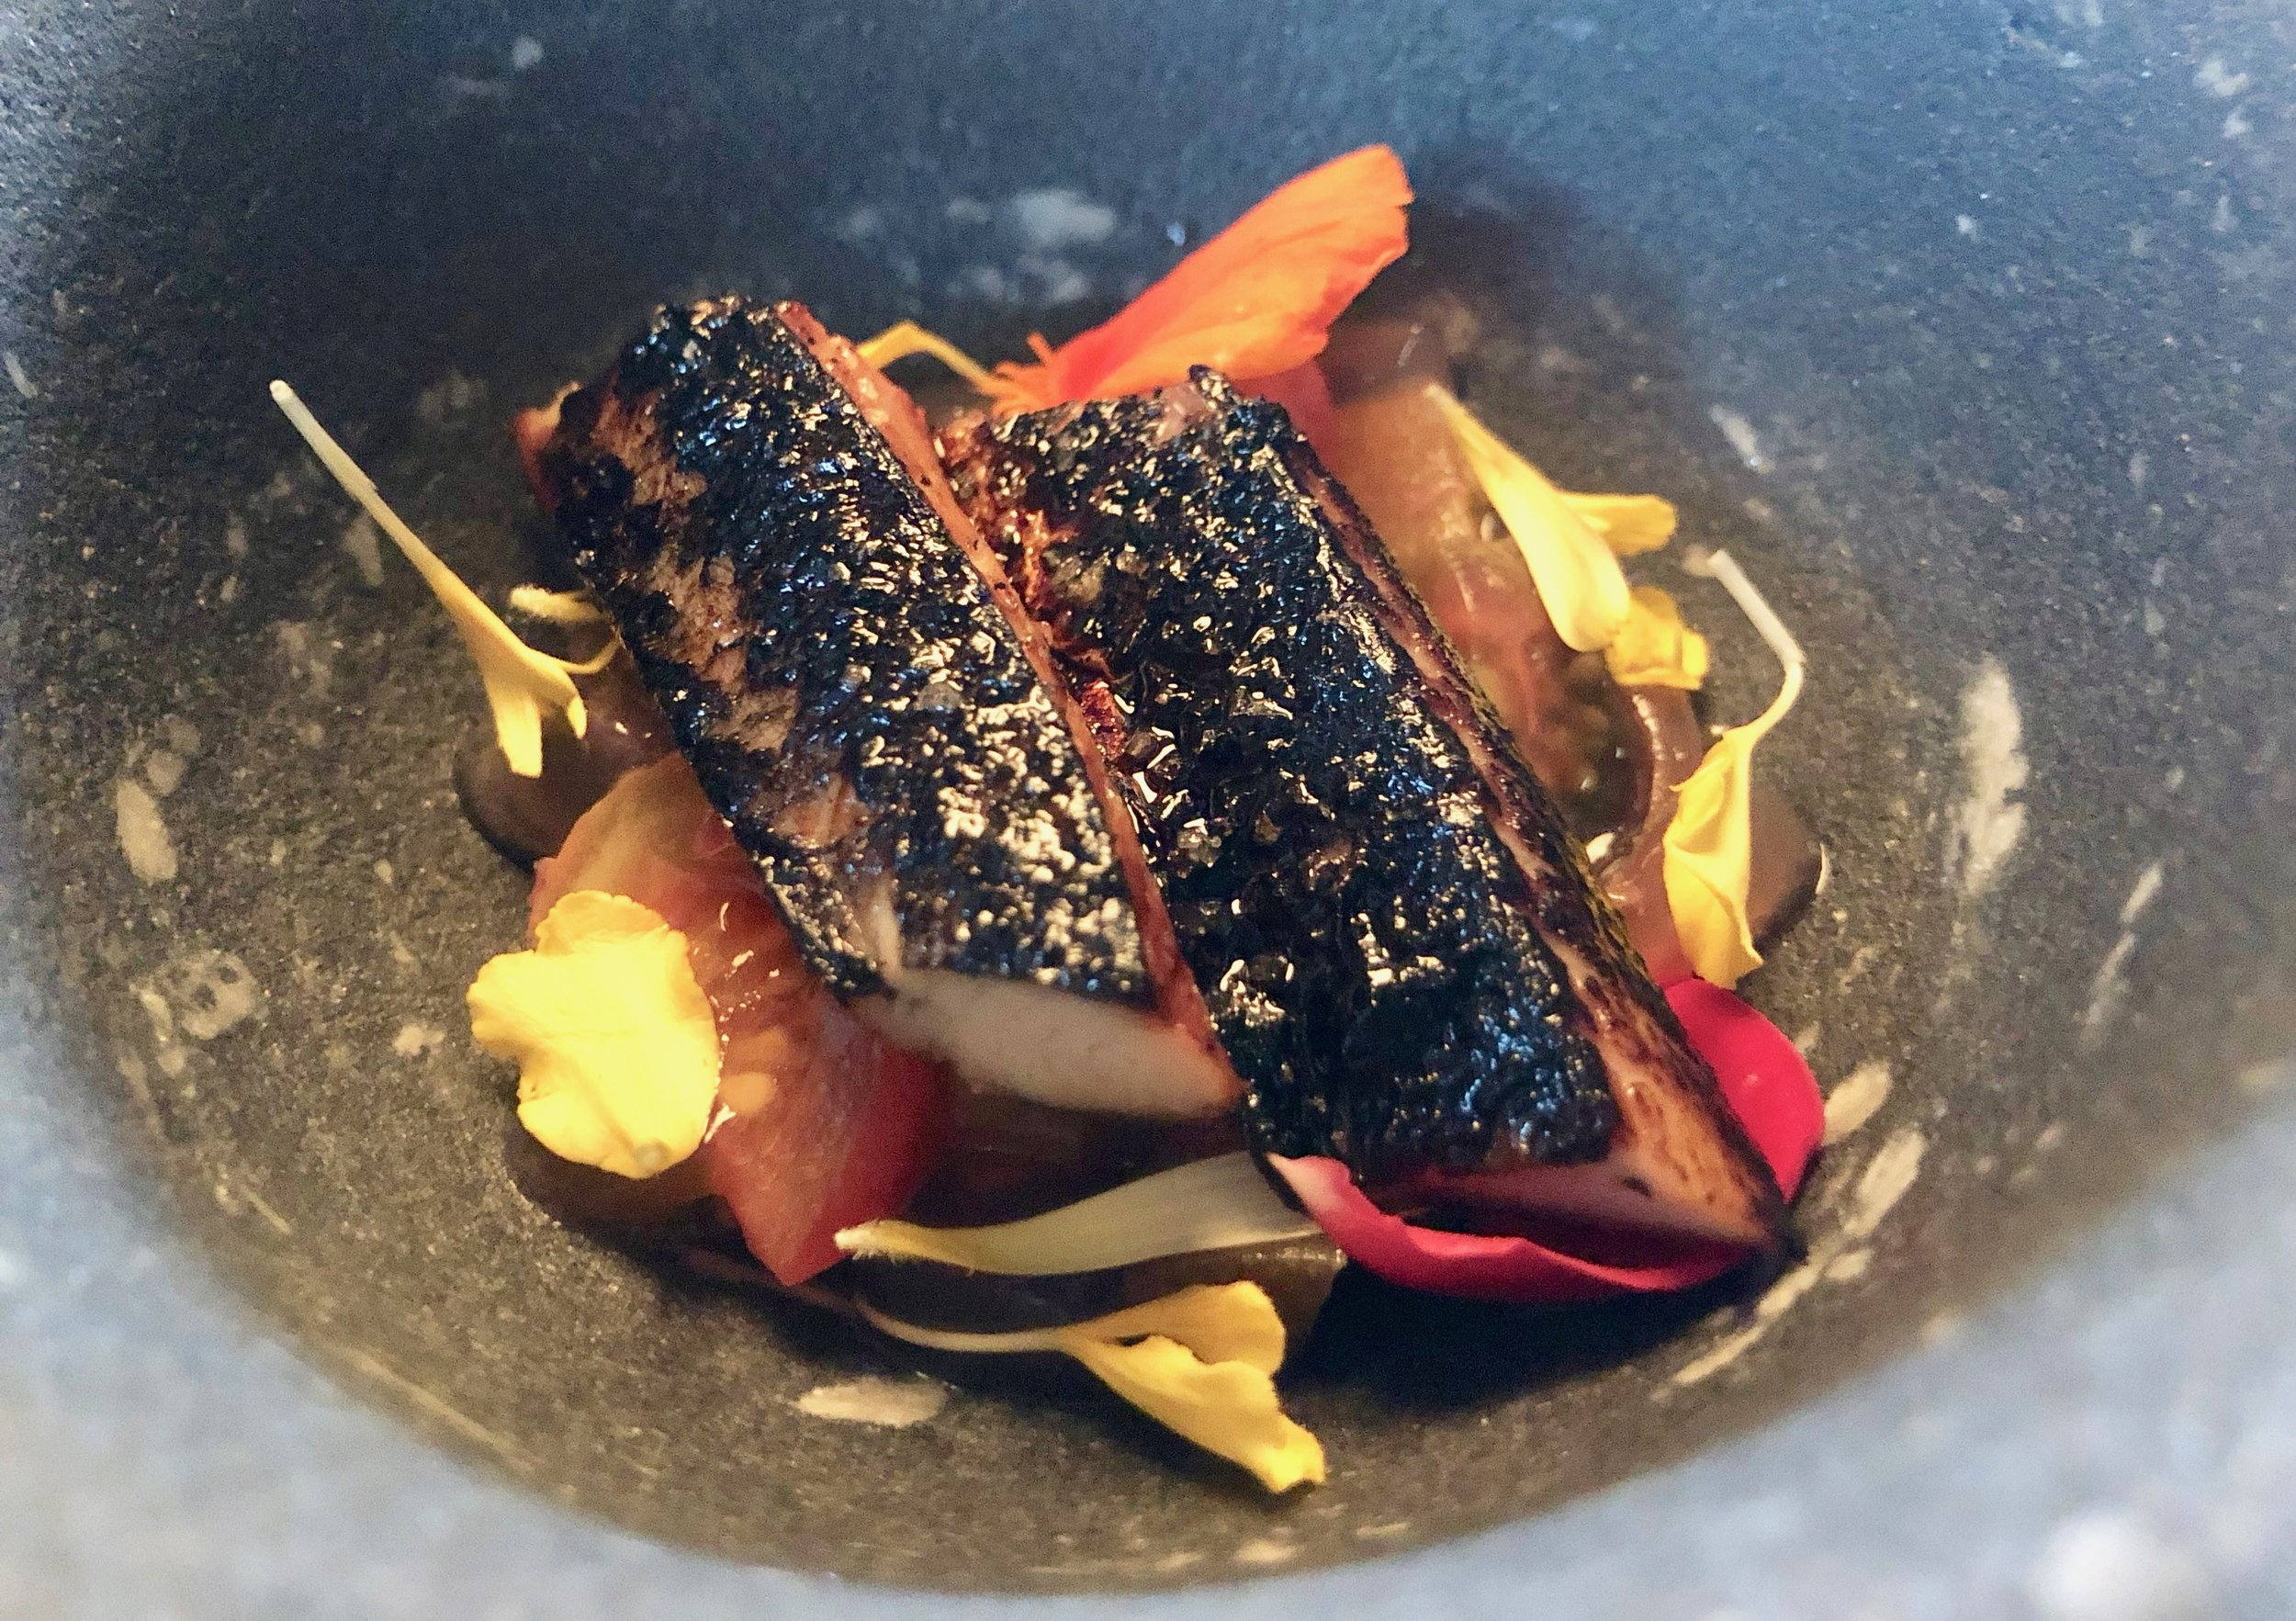 Mackerel from Kristiansand, tomato with rhubarb and roseship from Korsvold Farm